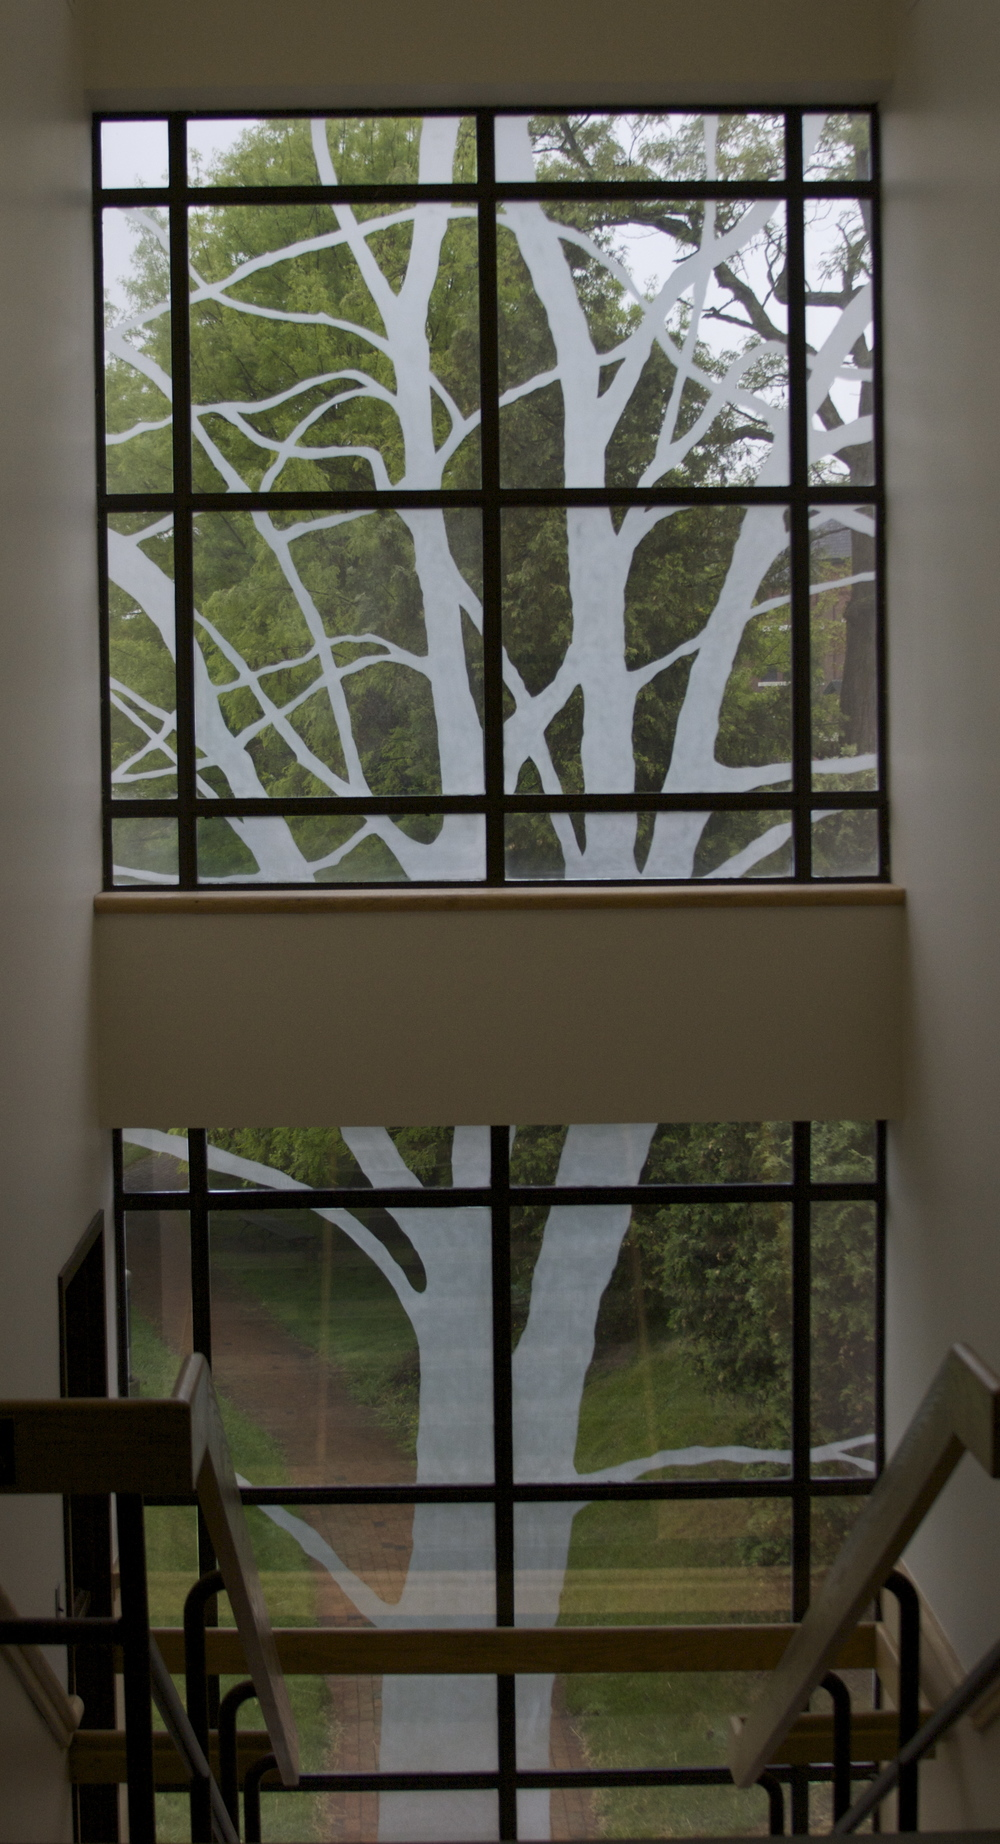 Tree, 30'x8' Etched Glass 2011 Brattleboro Court House, Brattleboro, VT